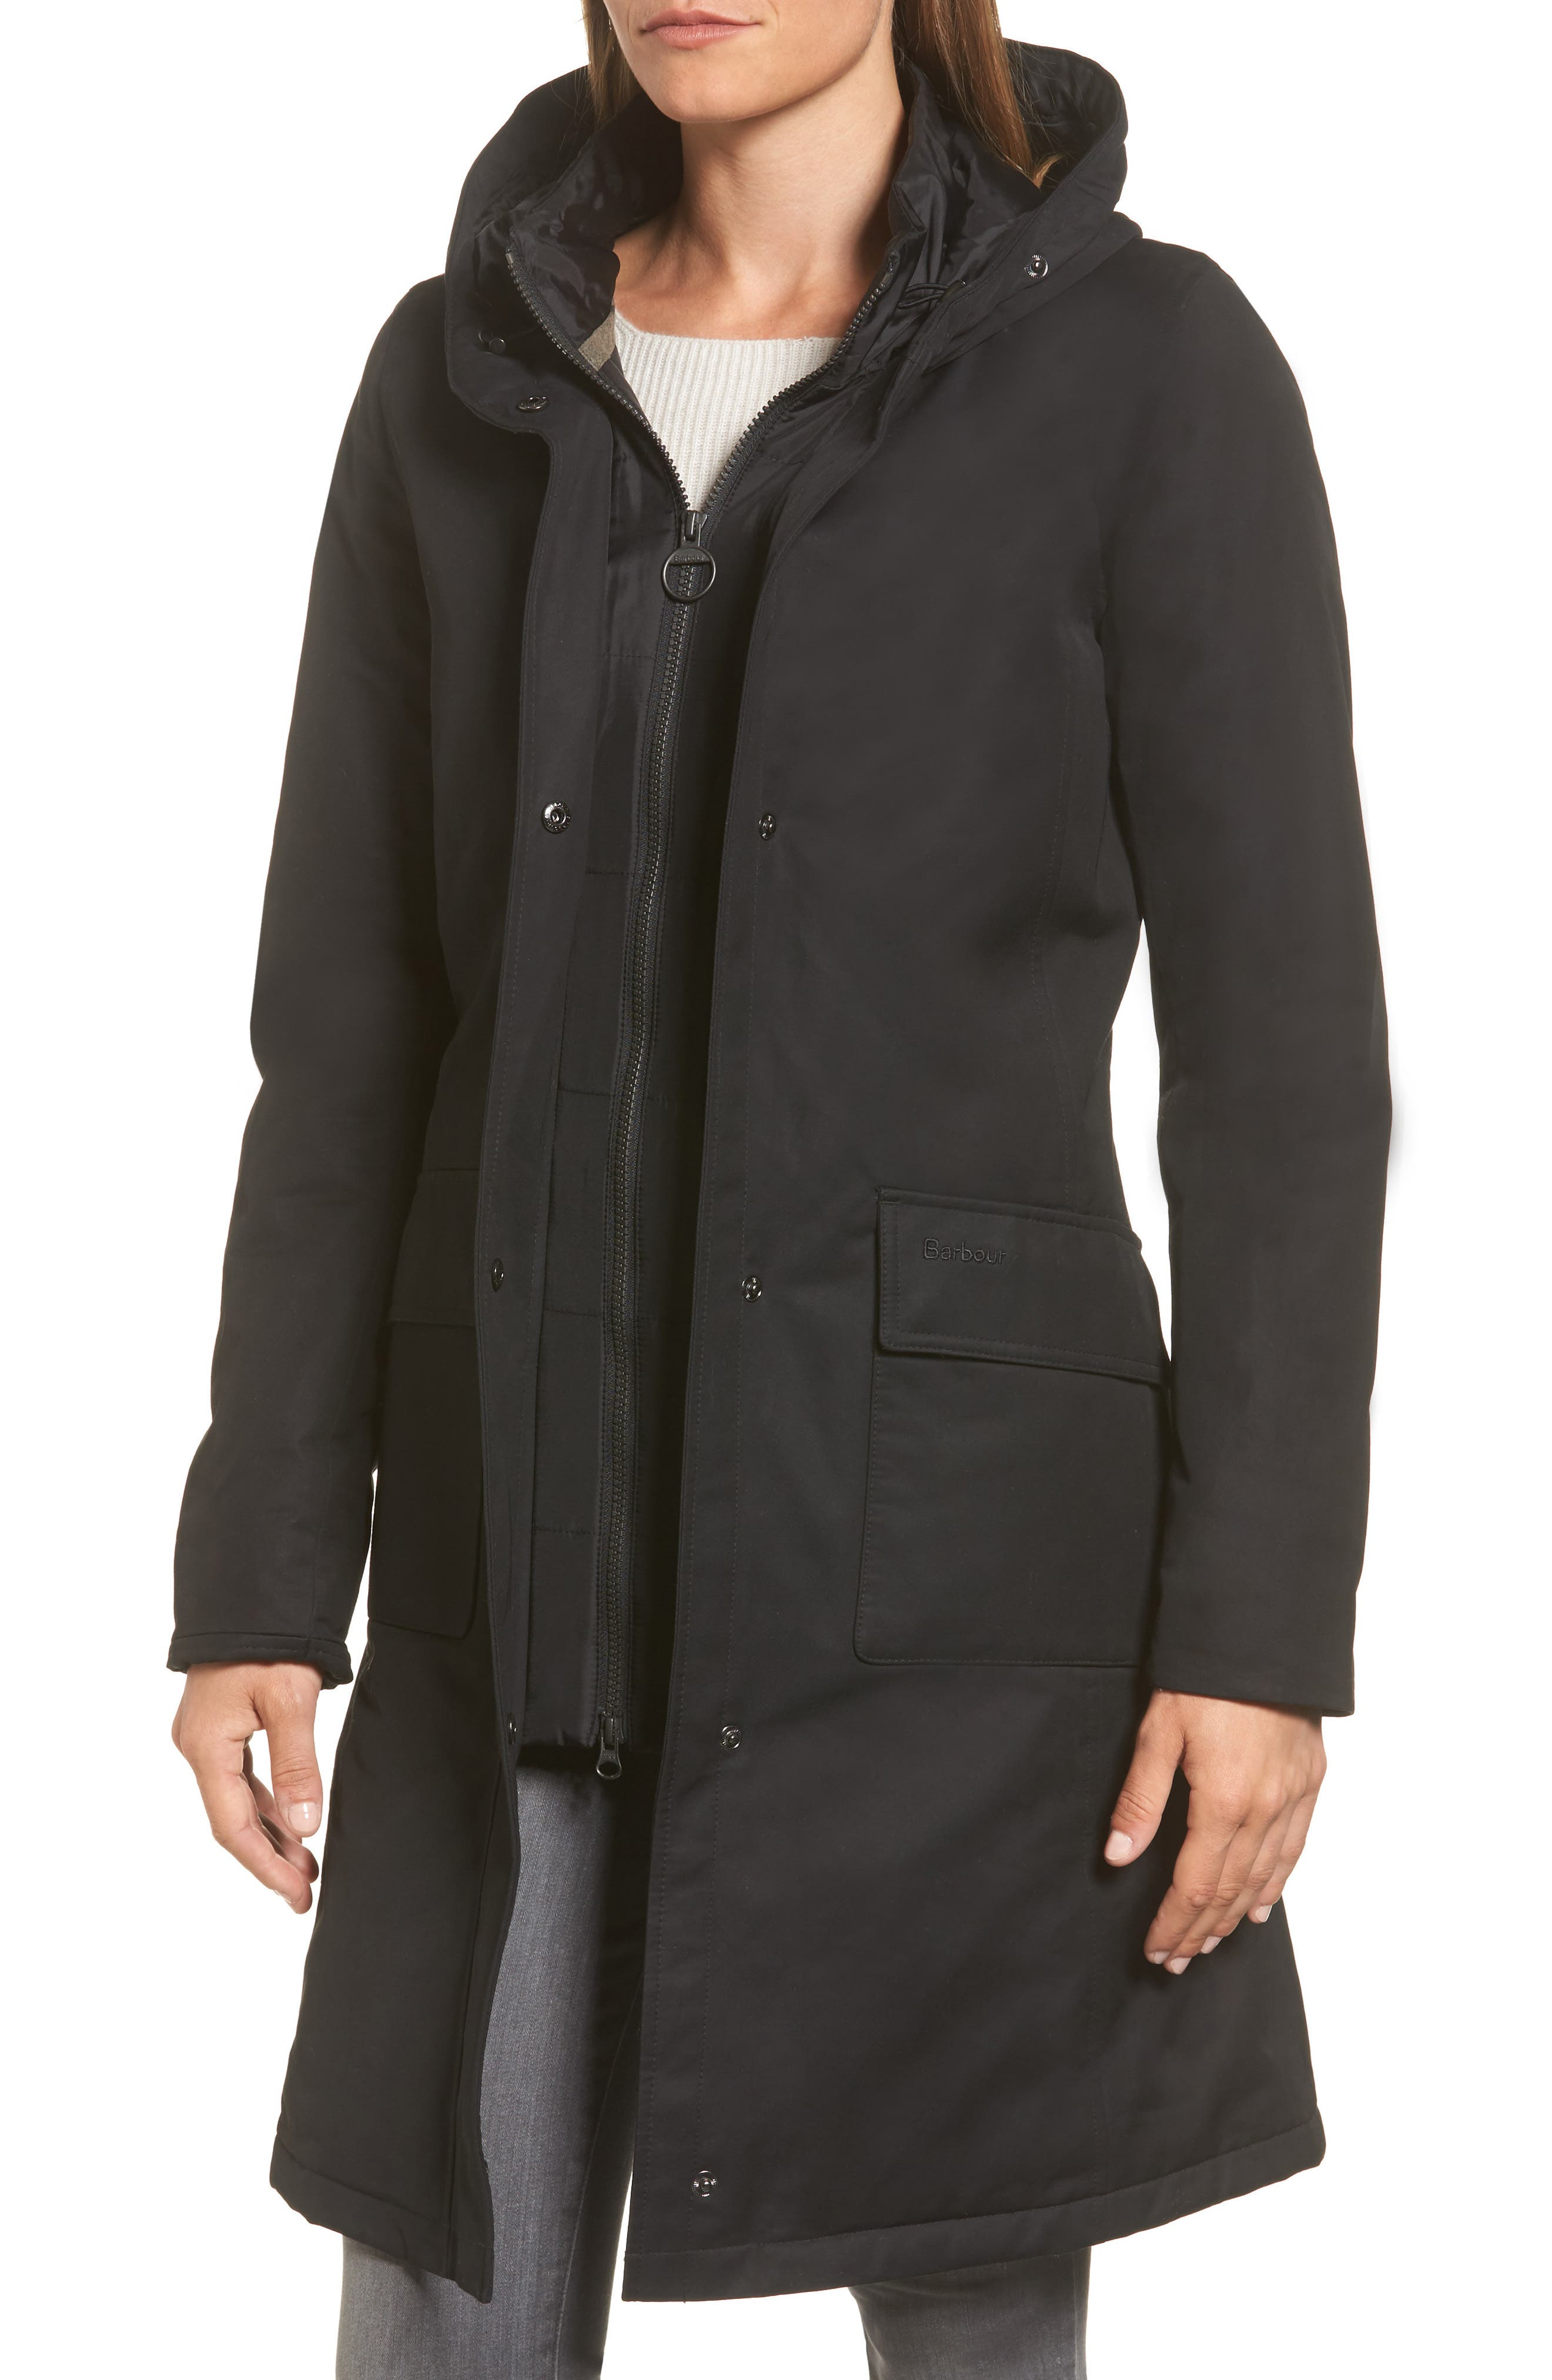 Linton Hooded Waterproof Jacket with Faux Fur Trim,                             Alternate thumbnail 4, color,                             001